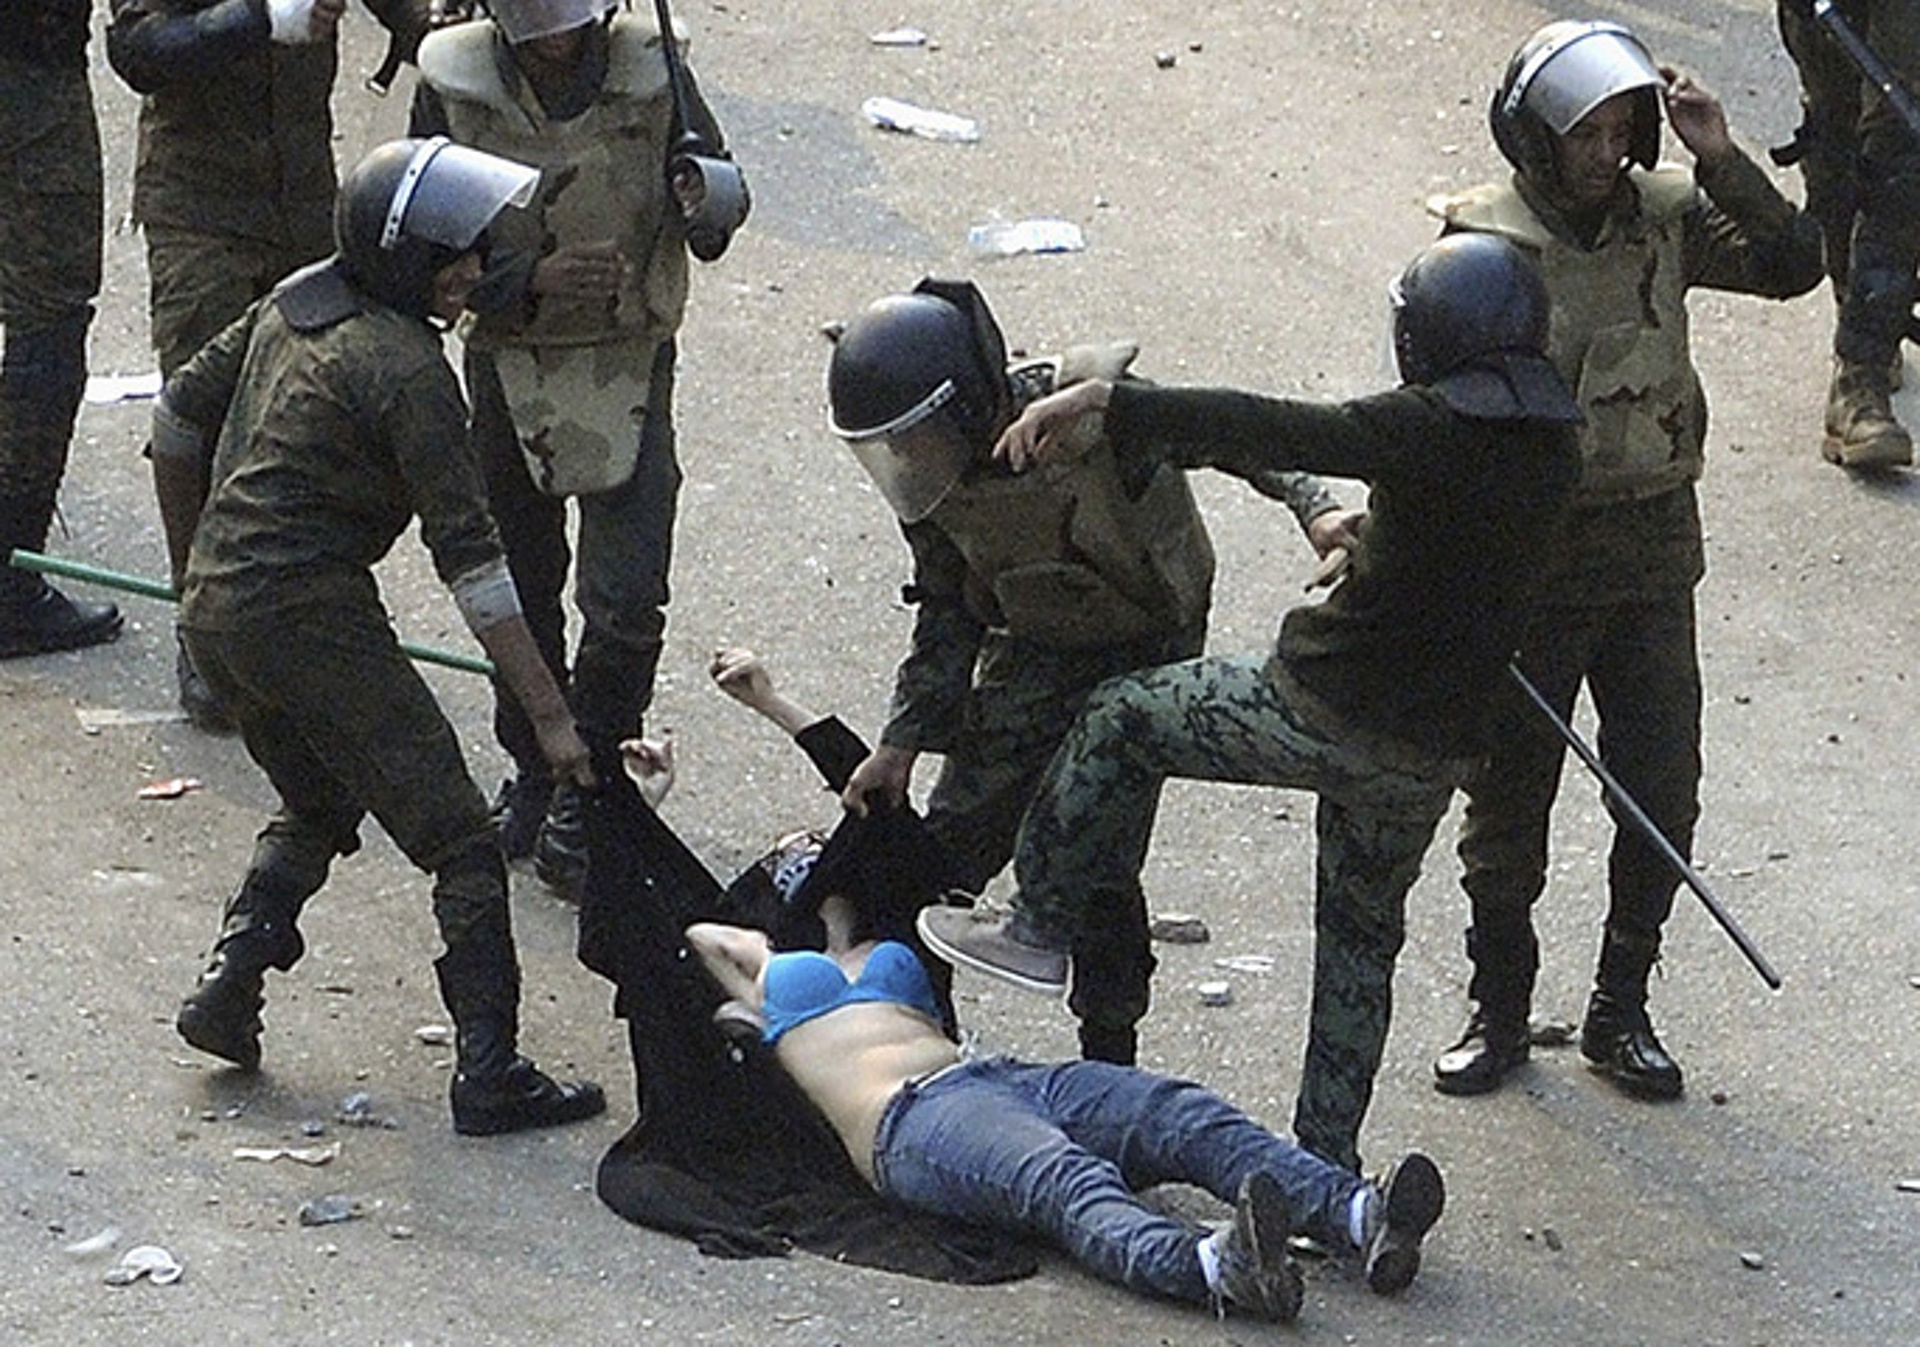 Egyptian soldiers beat a female protester during clashes at Tahrir Square, pulling up her abaya and dragging her through the street. Photo: Reuters